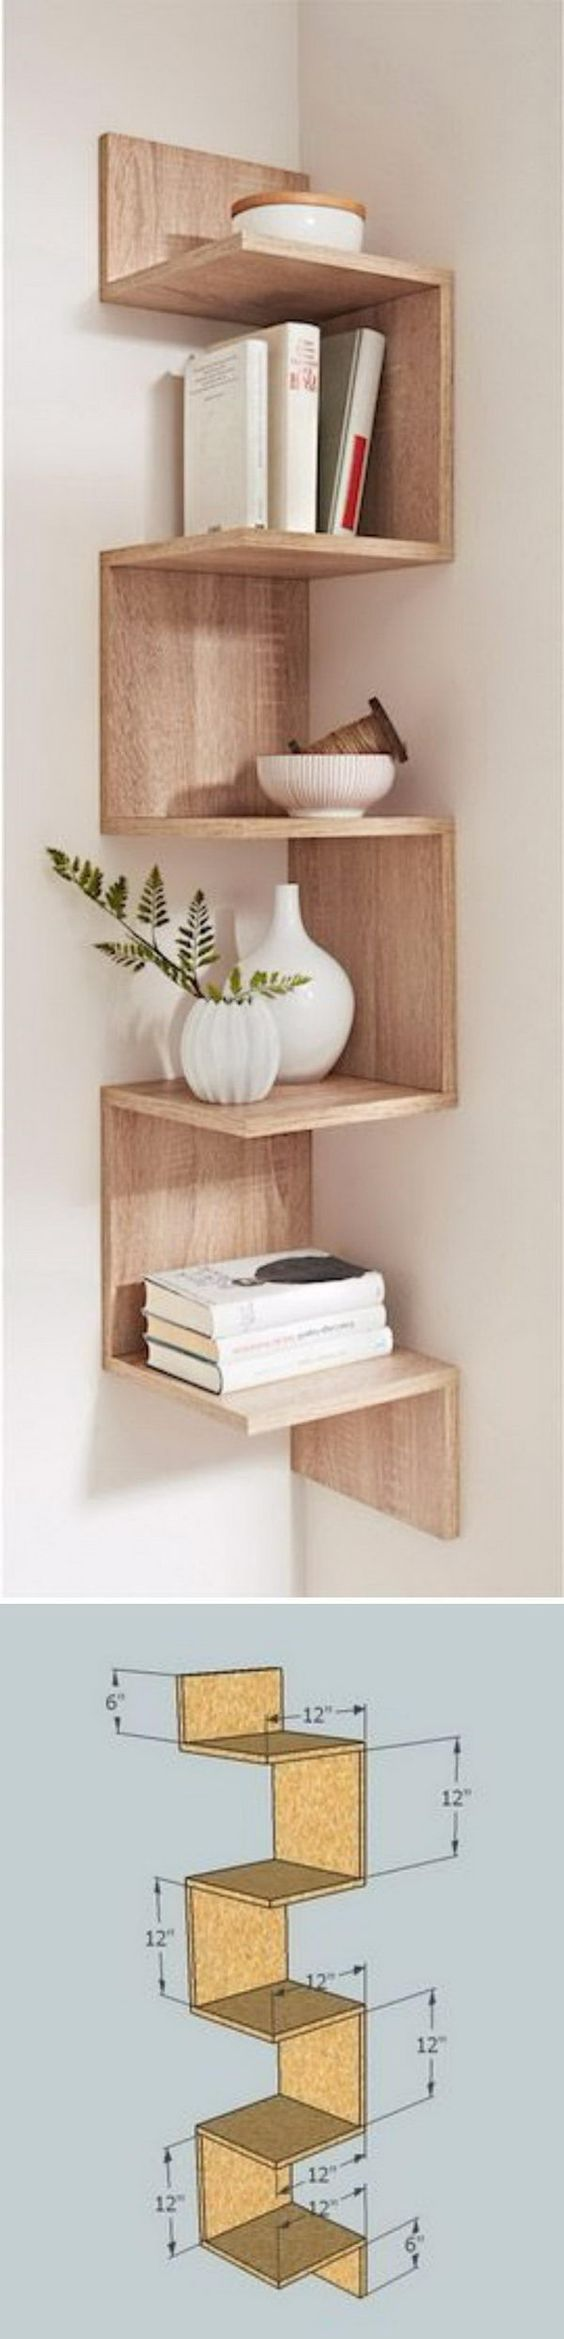 Best 25 diy shelving ideas on pinterest wall shelves Cool wood shelf ideas